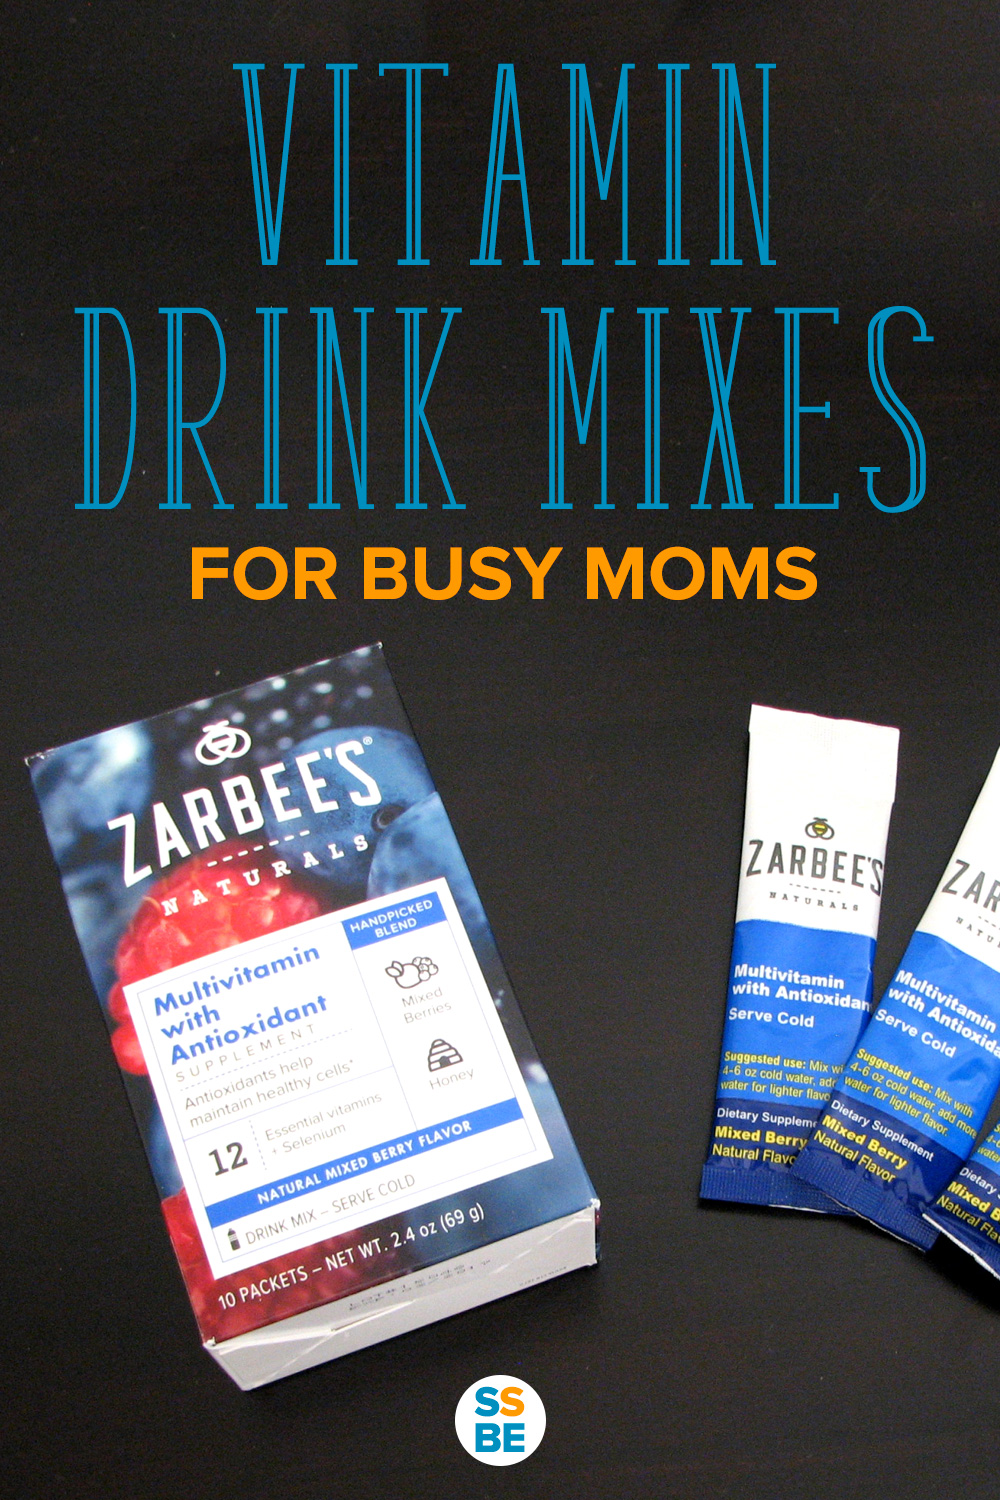 Vitamin Drink Mixes for Busy Moms